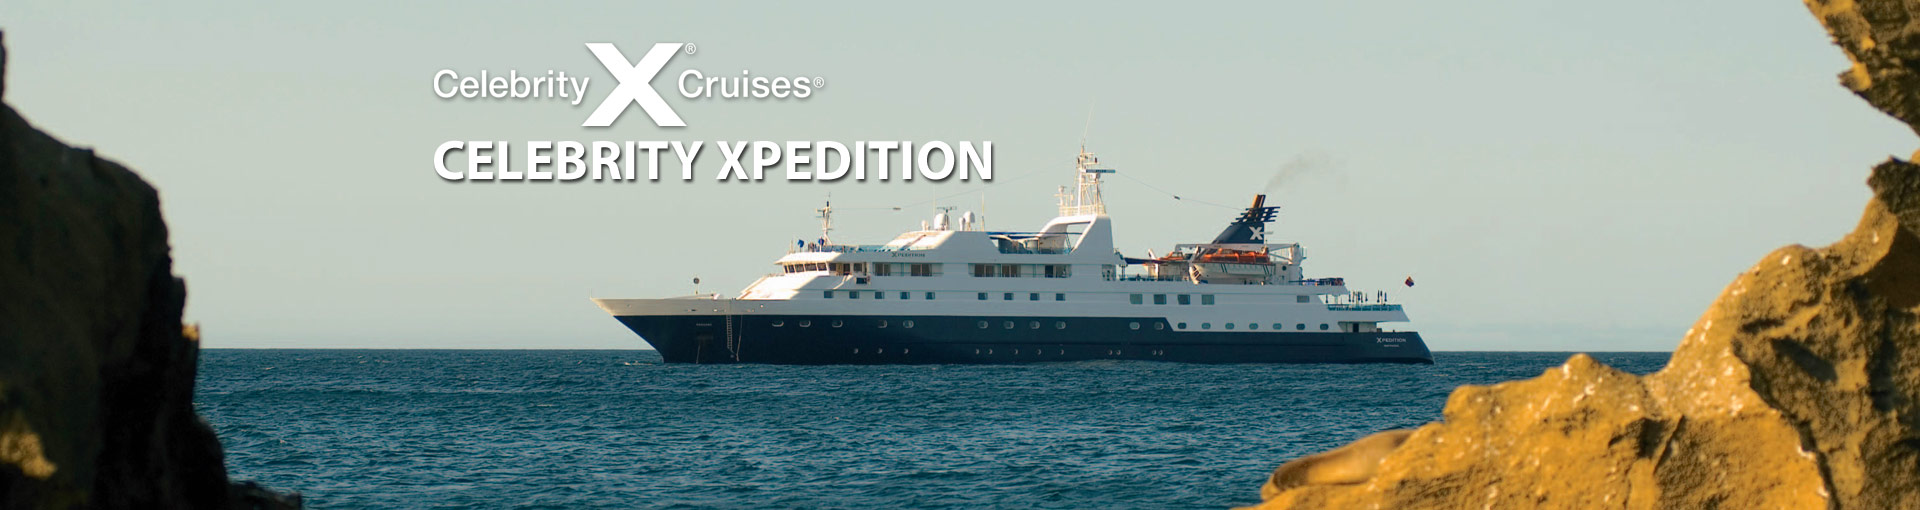 Celebrity Xpedition cruise ship